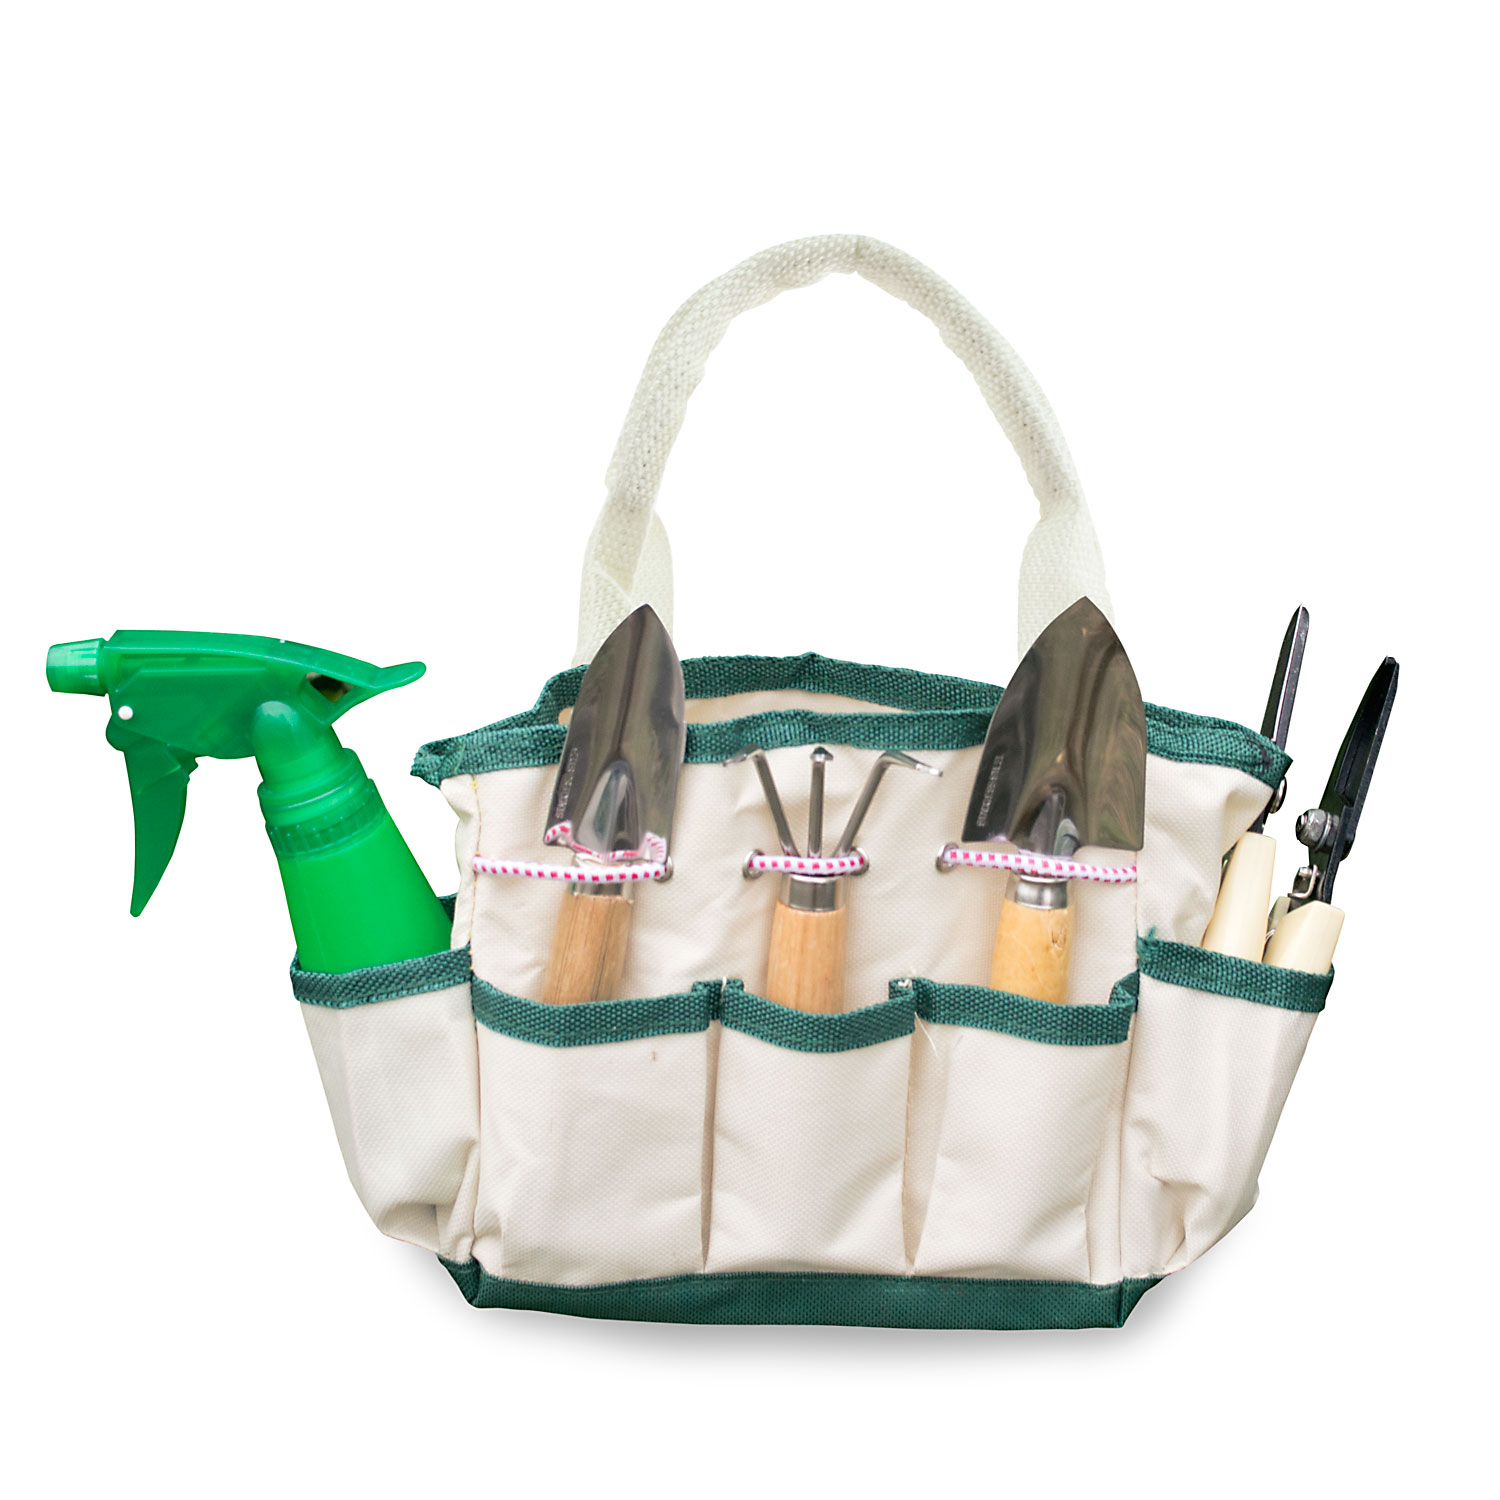 Gardenhome 7 piece small stainless steel garden tools for Small garden tool carrier